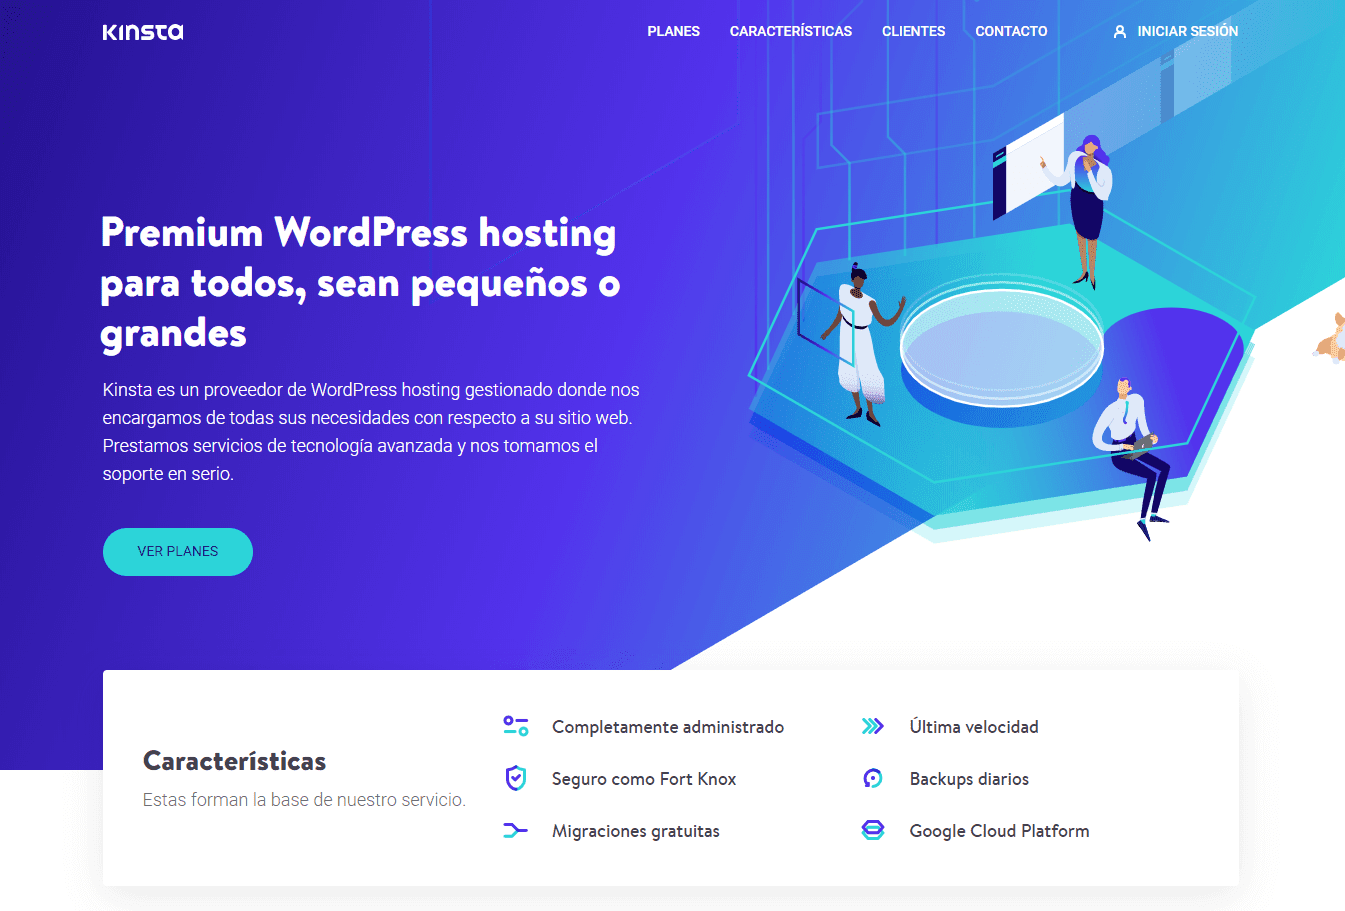 kinsta website spanish